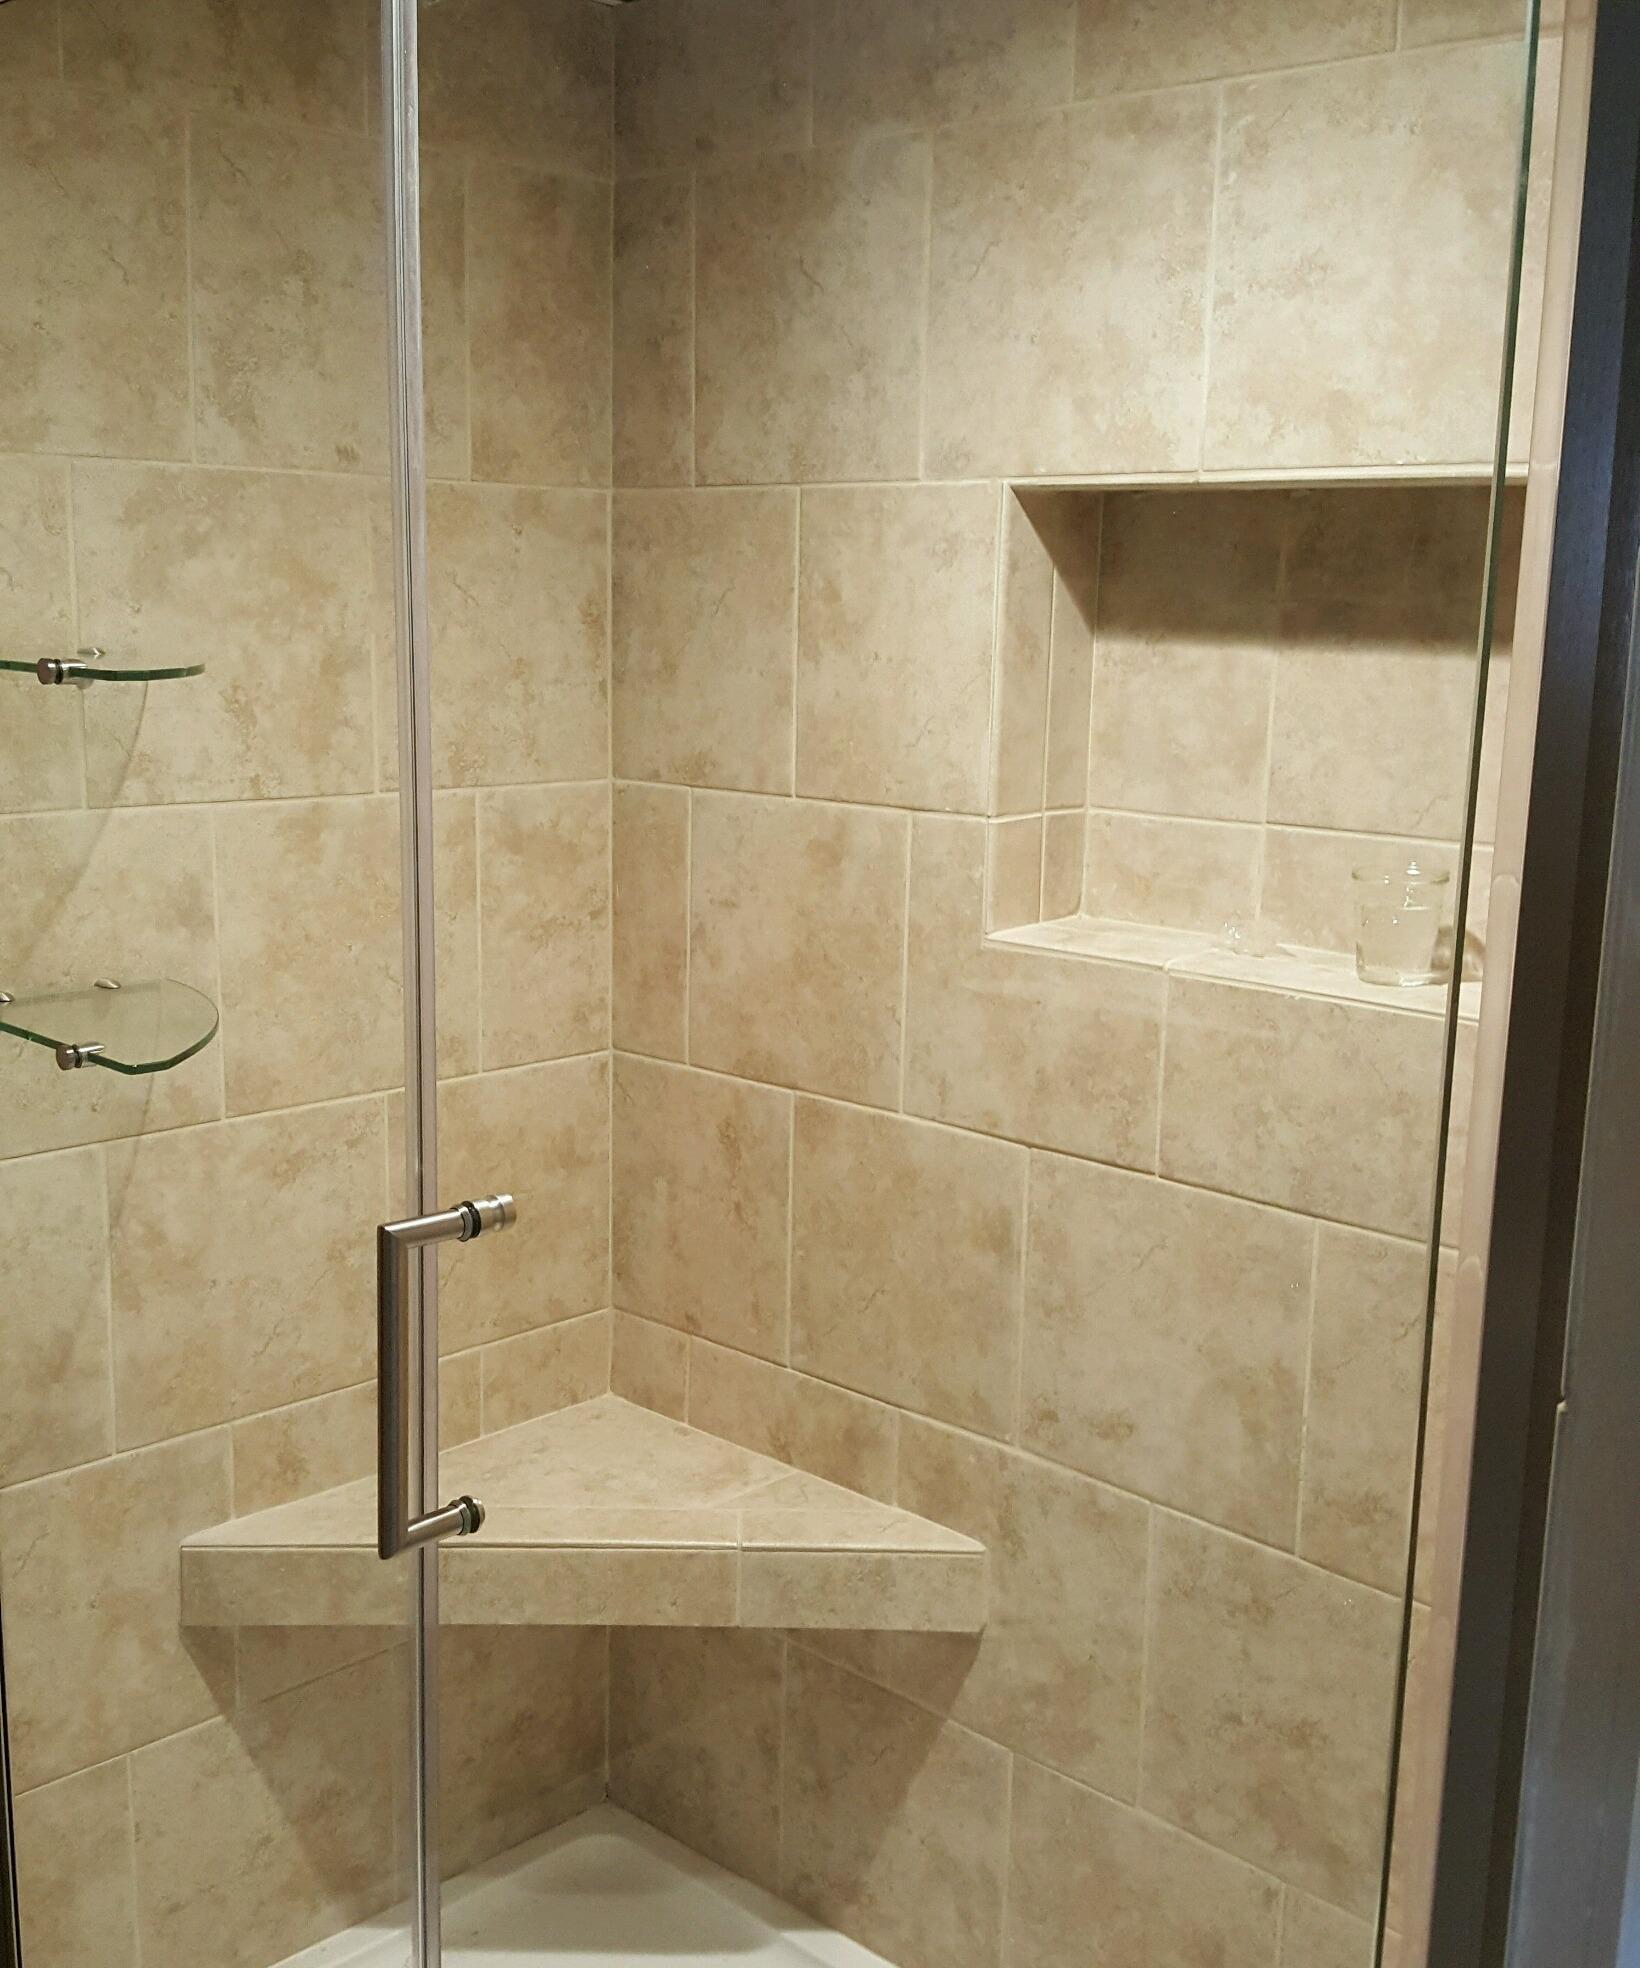 Accurate Upgrades Home Improvements LLC image 5